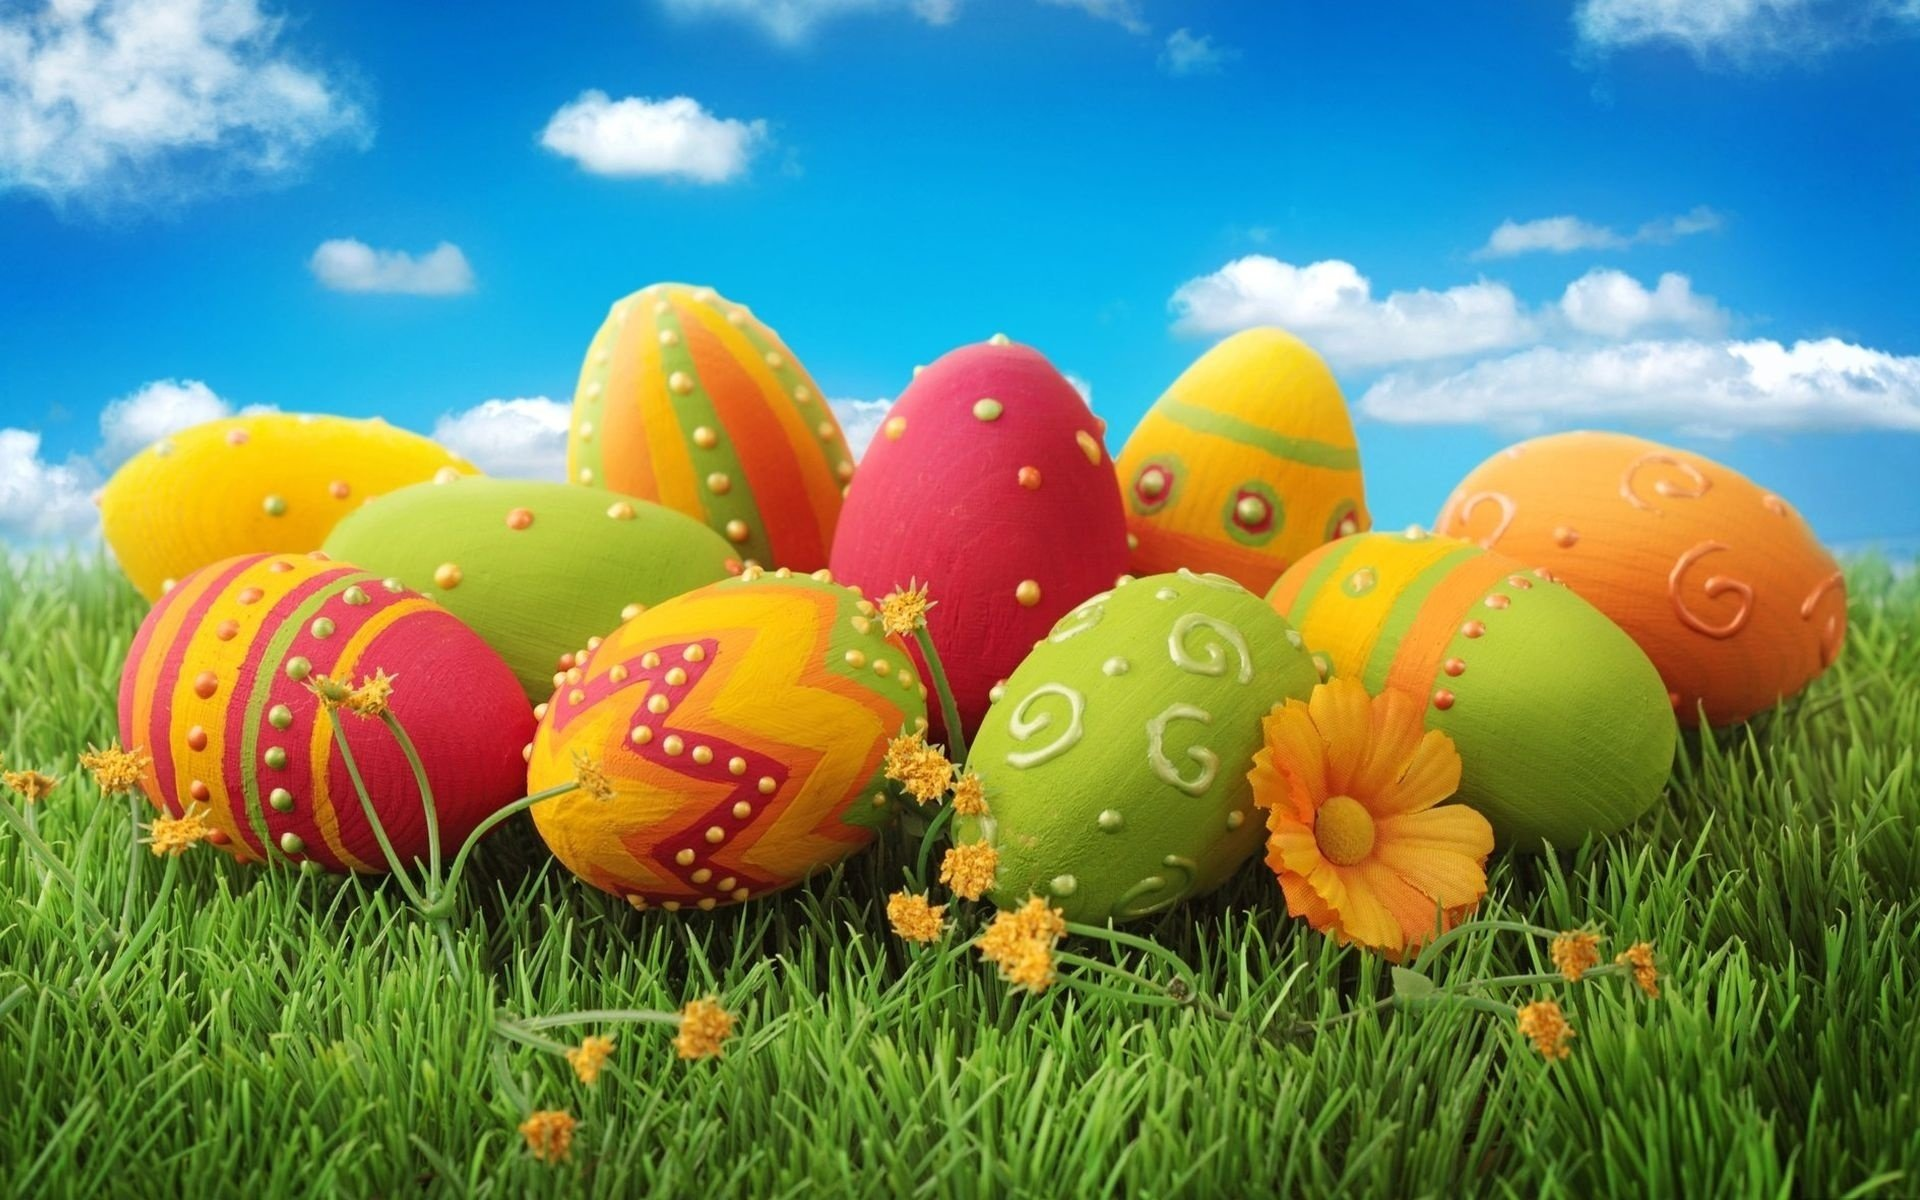 Easter Holiday HD Wallpaper   StylishHDWallpapers 1920x1200